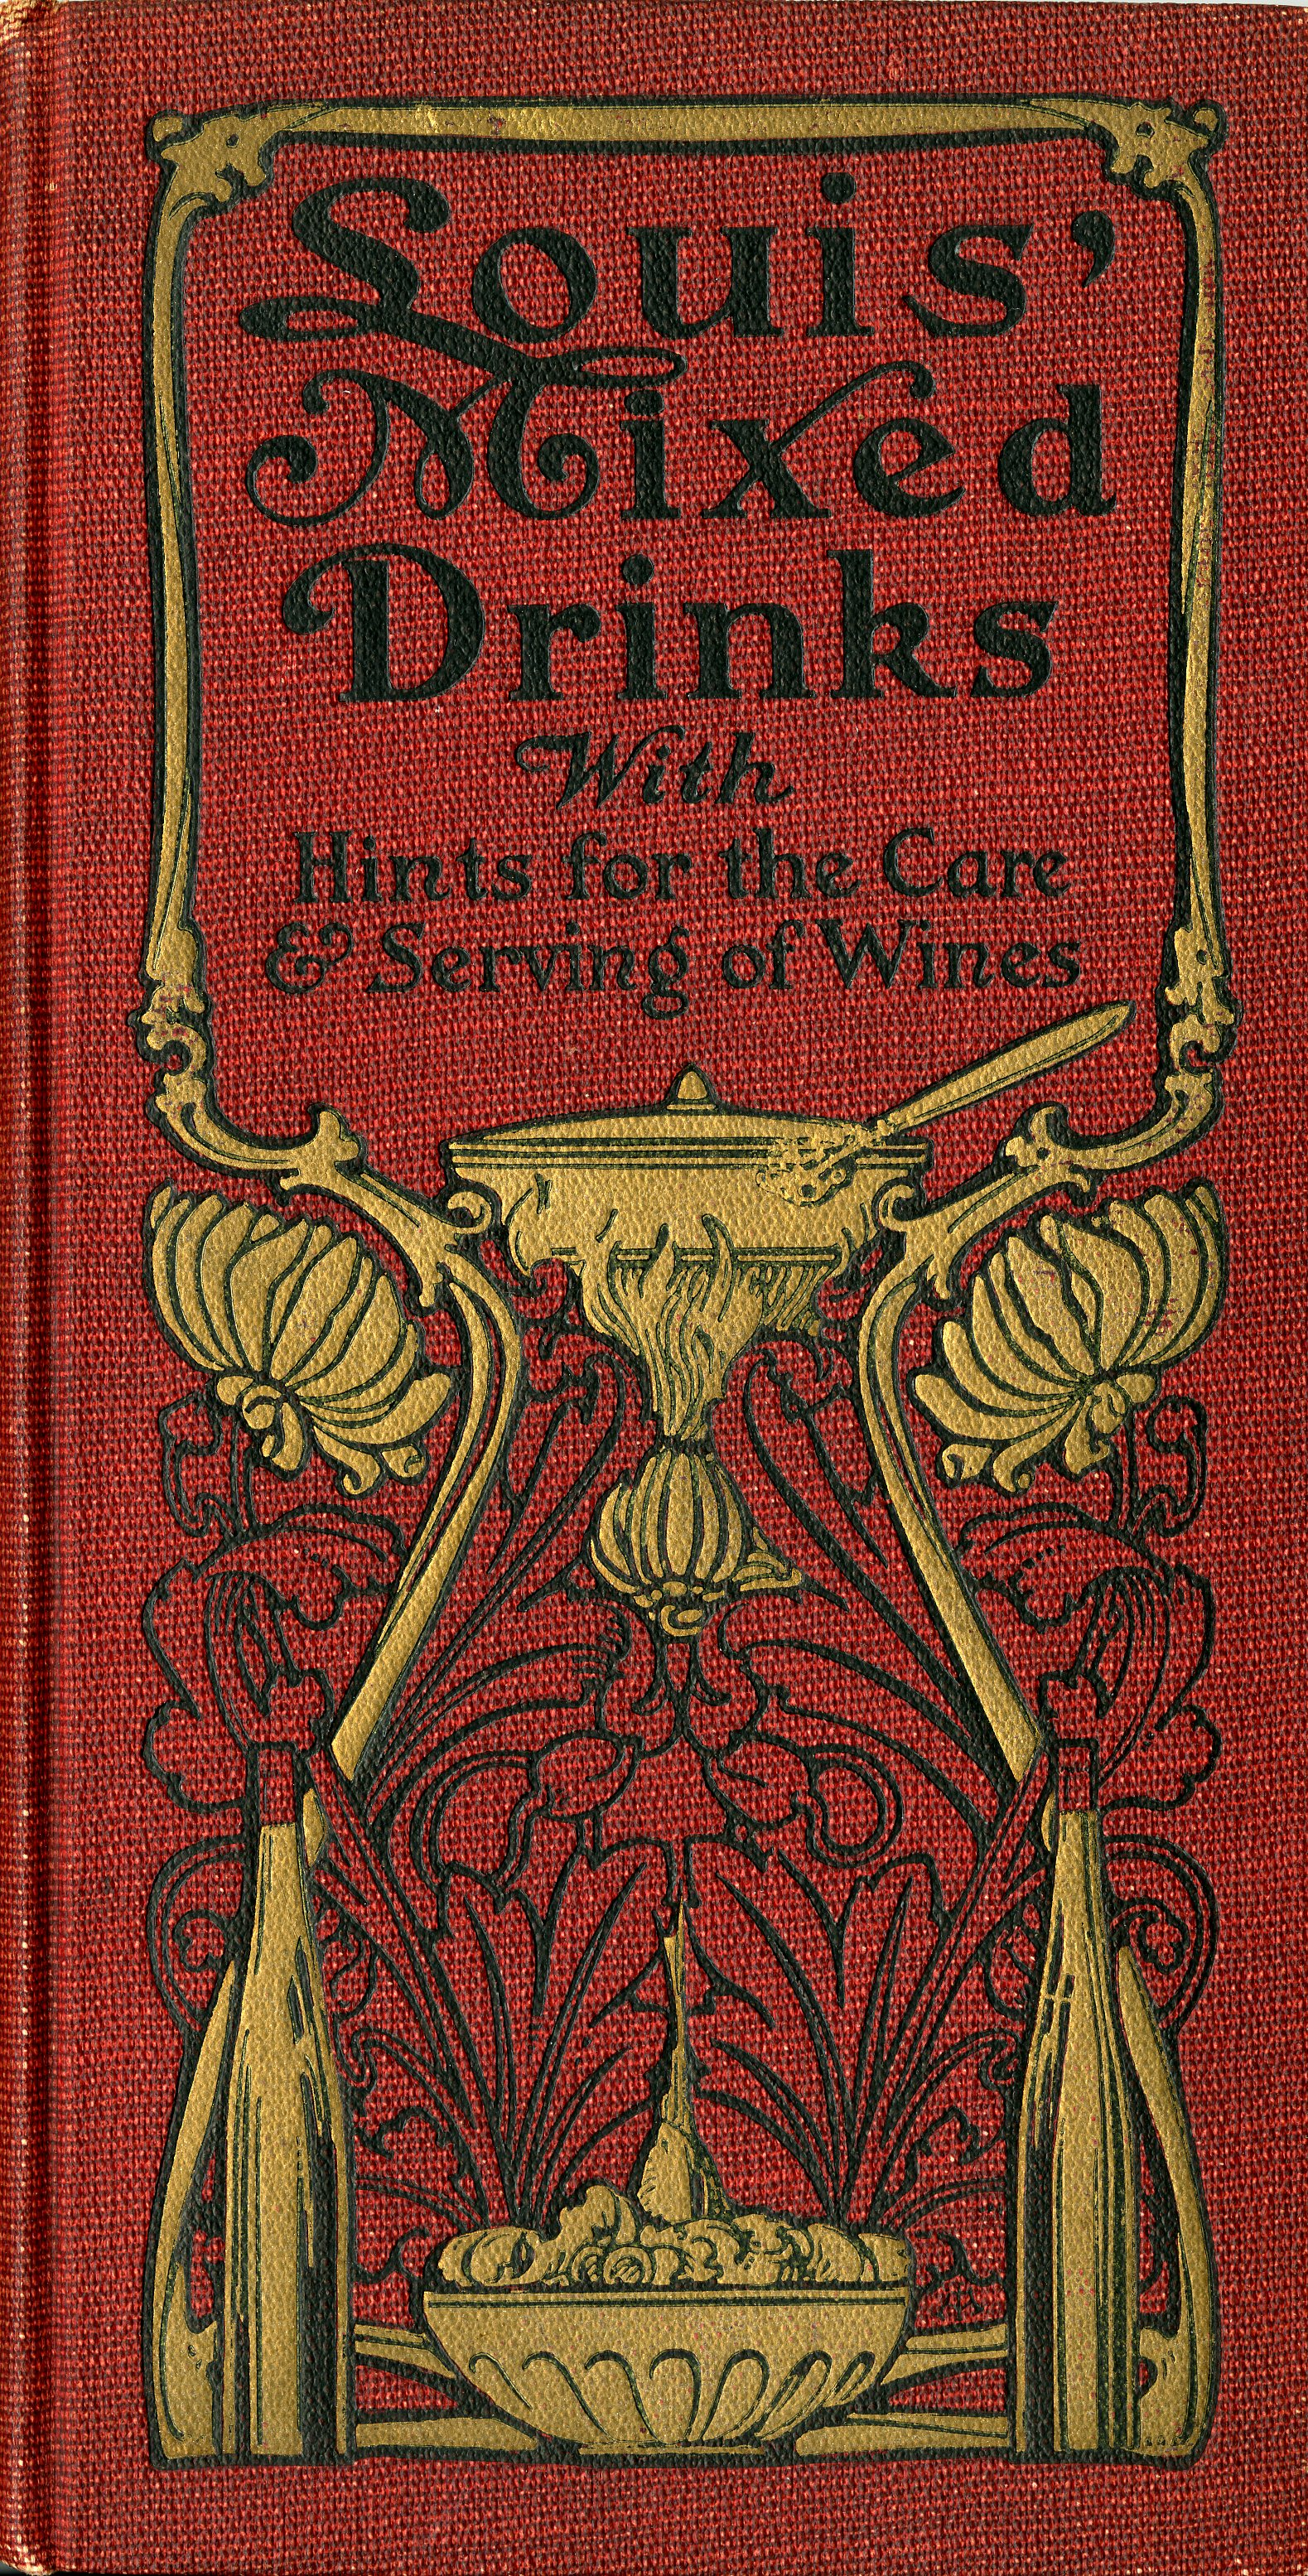 Louis' Mixed Drinks, 1901, front cover